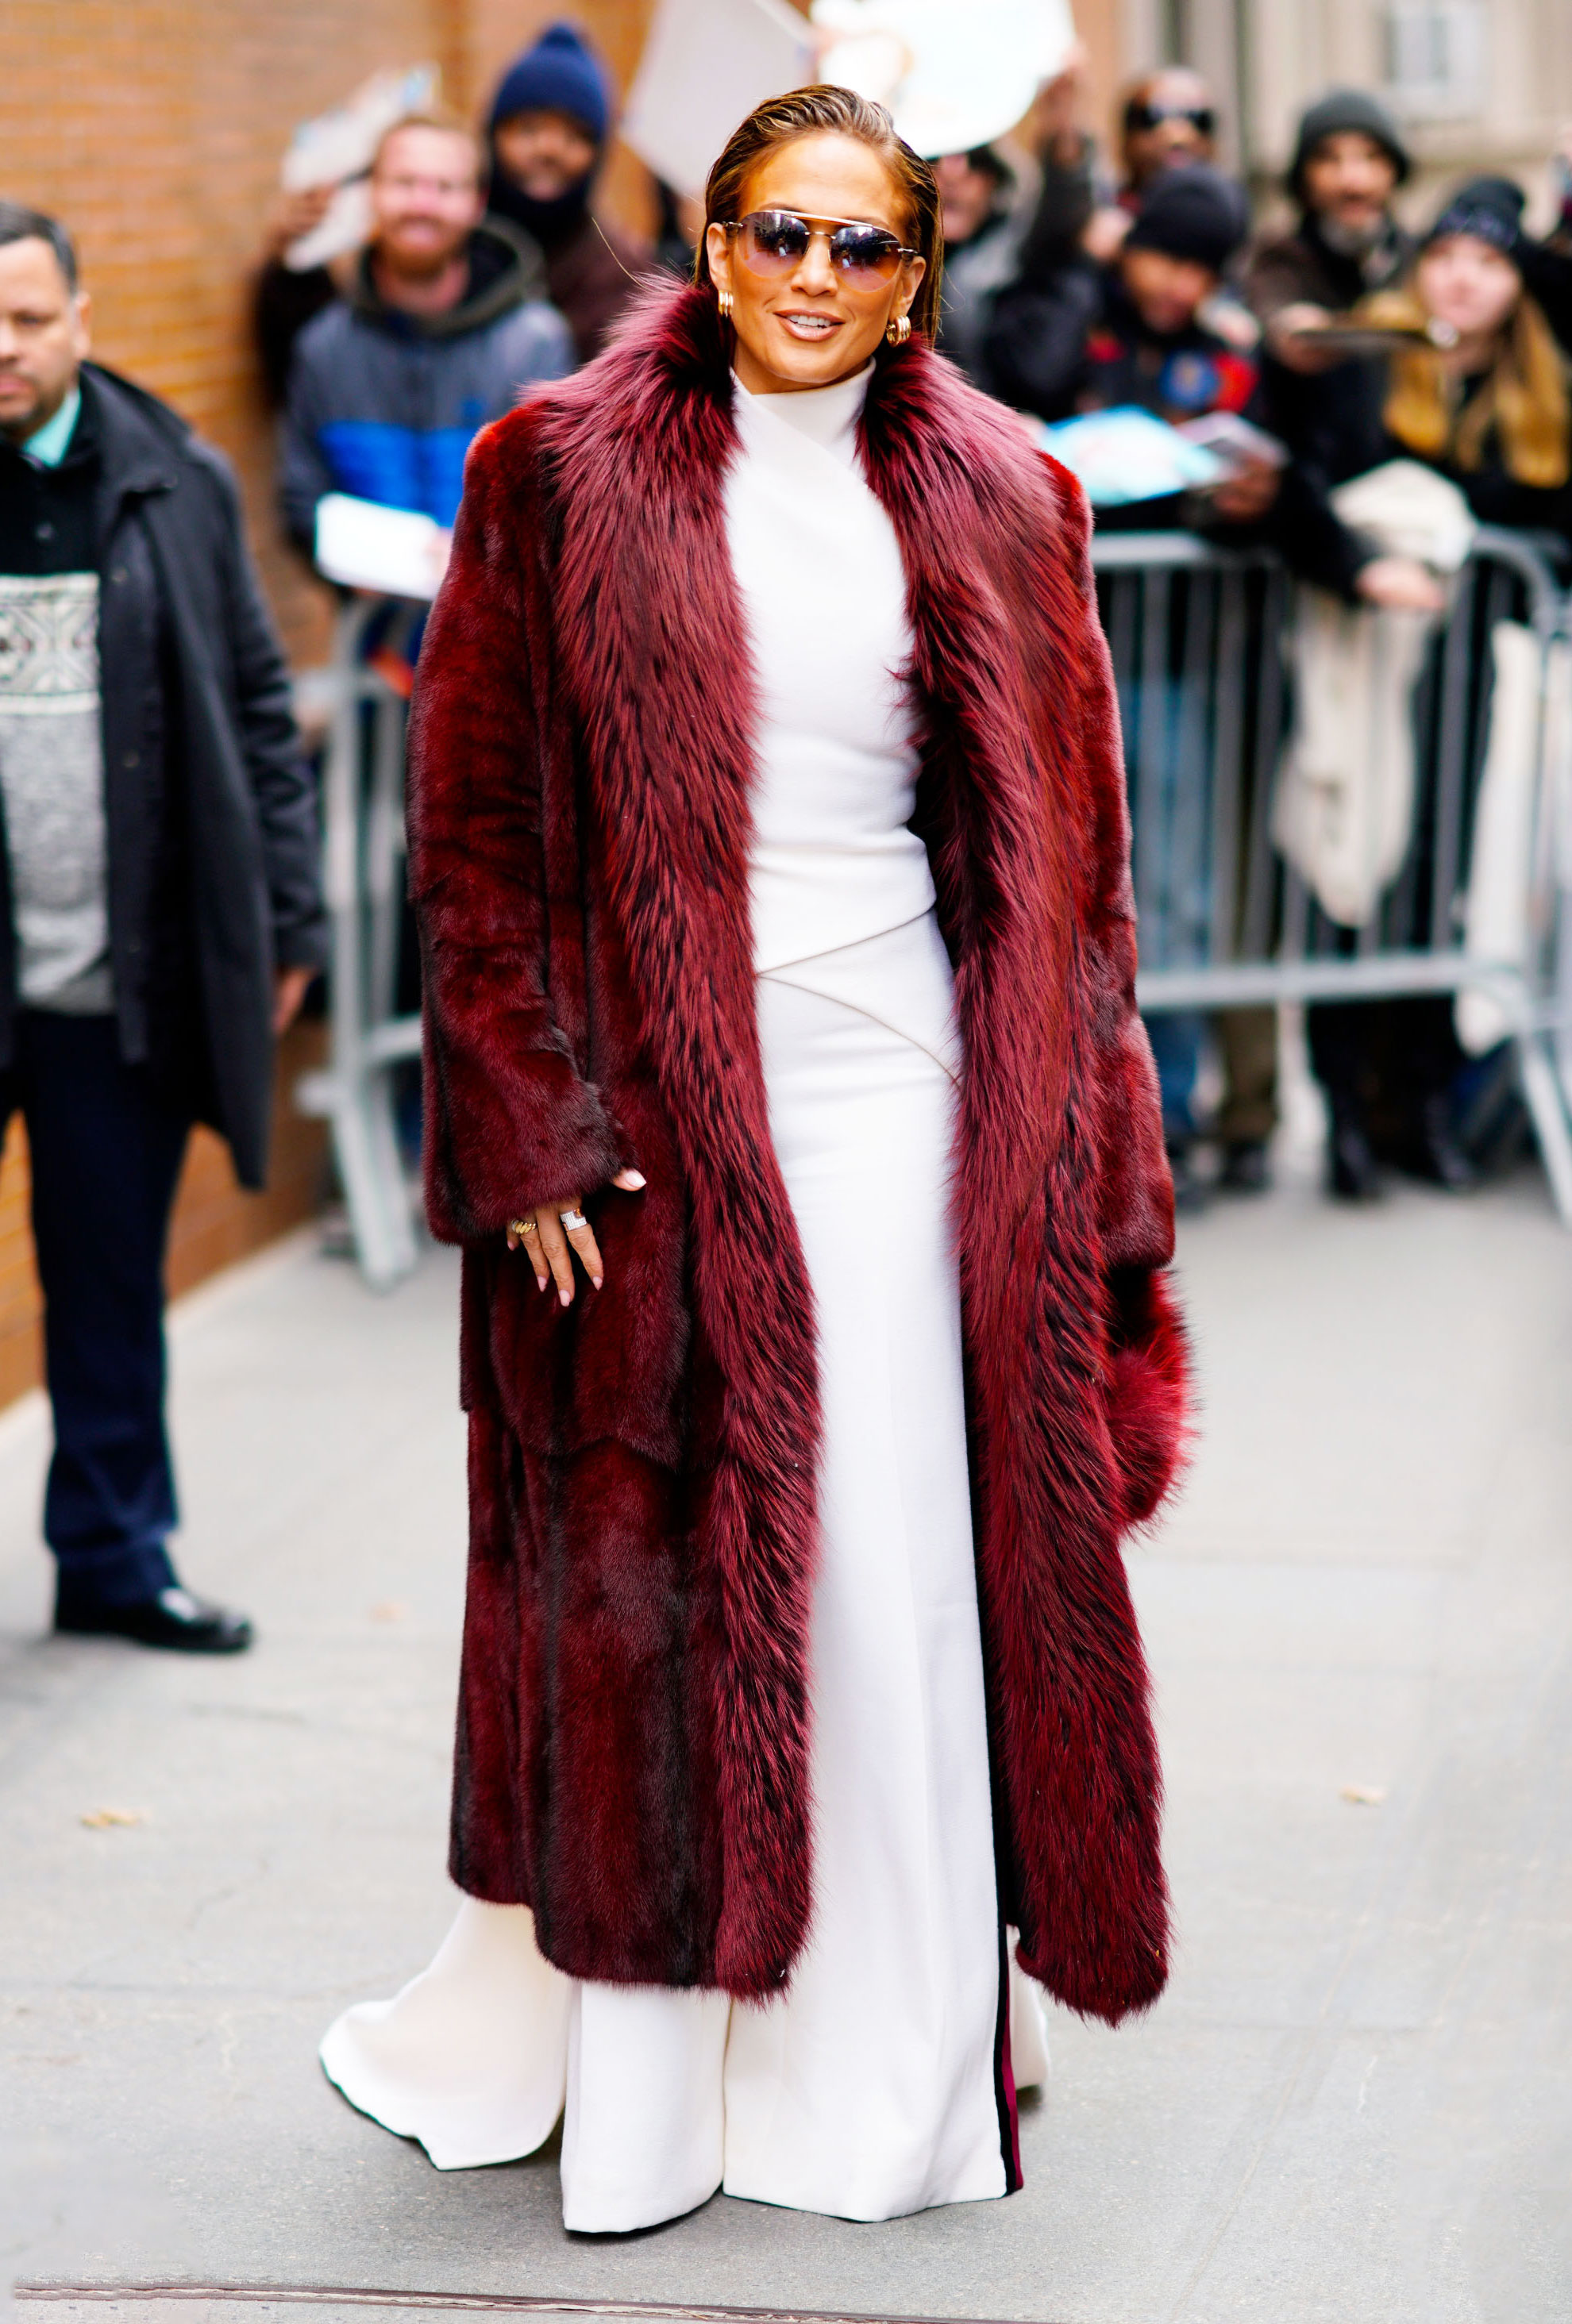 jennifer-lopez-Second-Act-press-coat - Arriving at The View on Wednesday, December 12, the Second Act star topped off her winter white look with a burgundy fur coat and matching clutch.